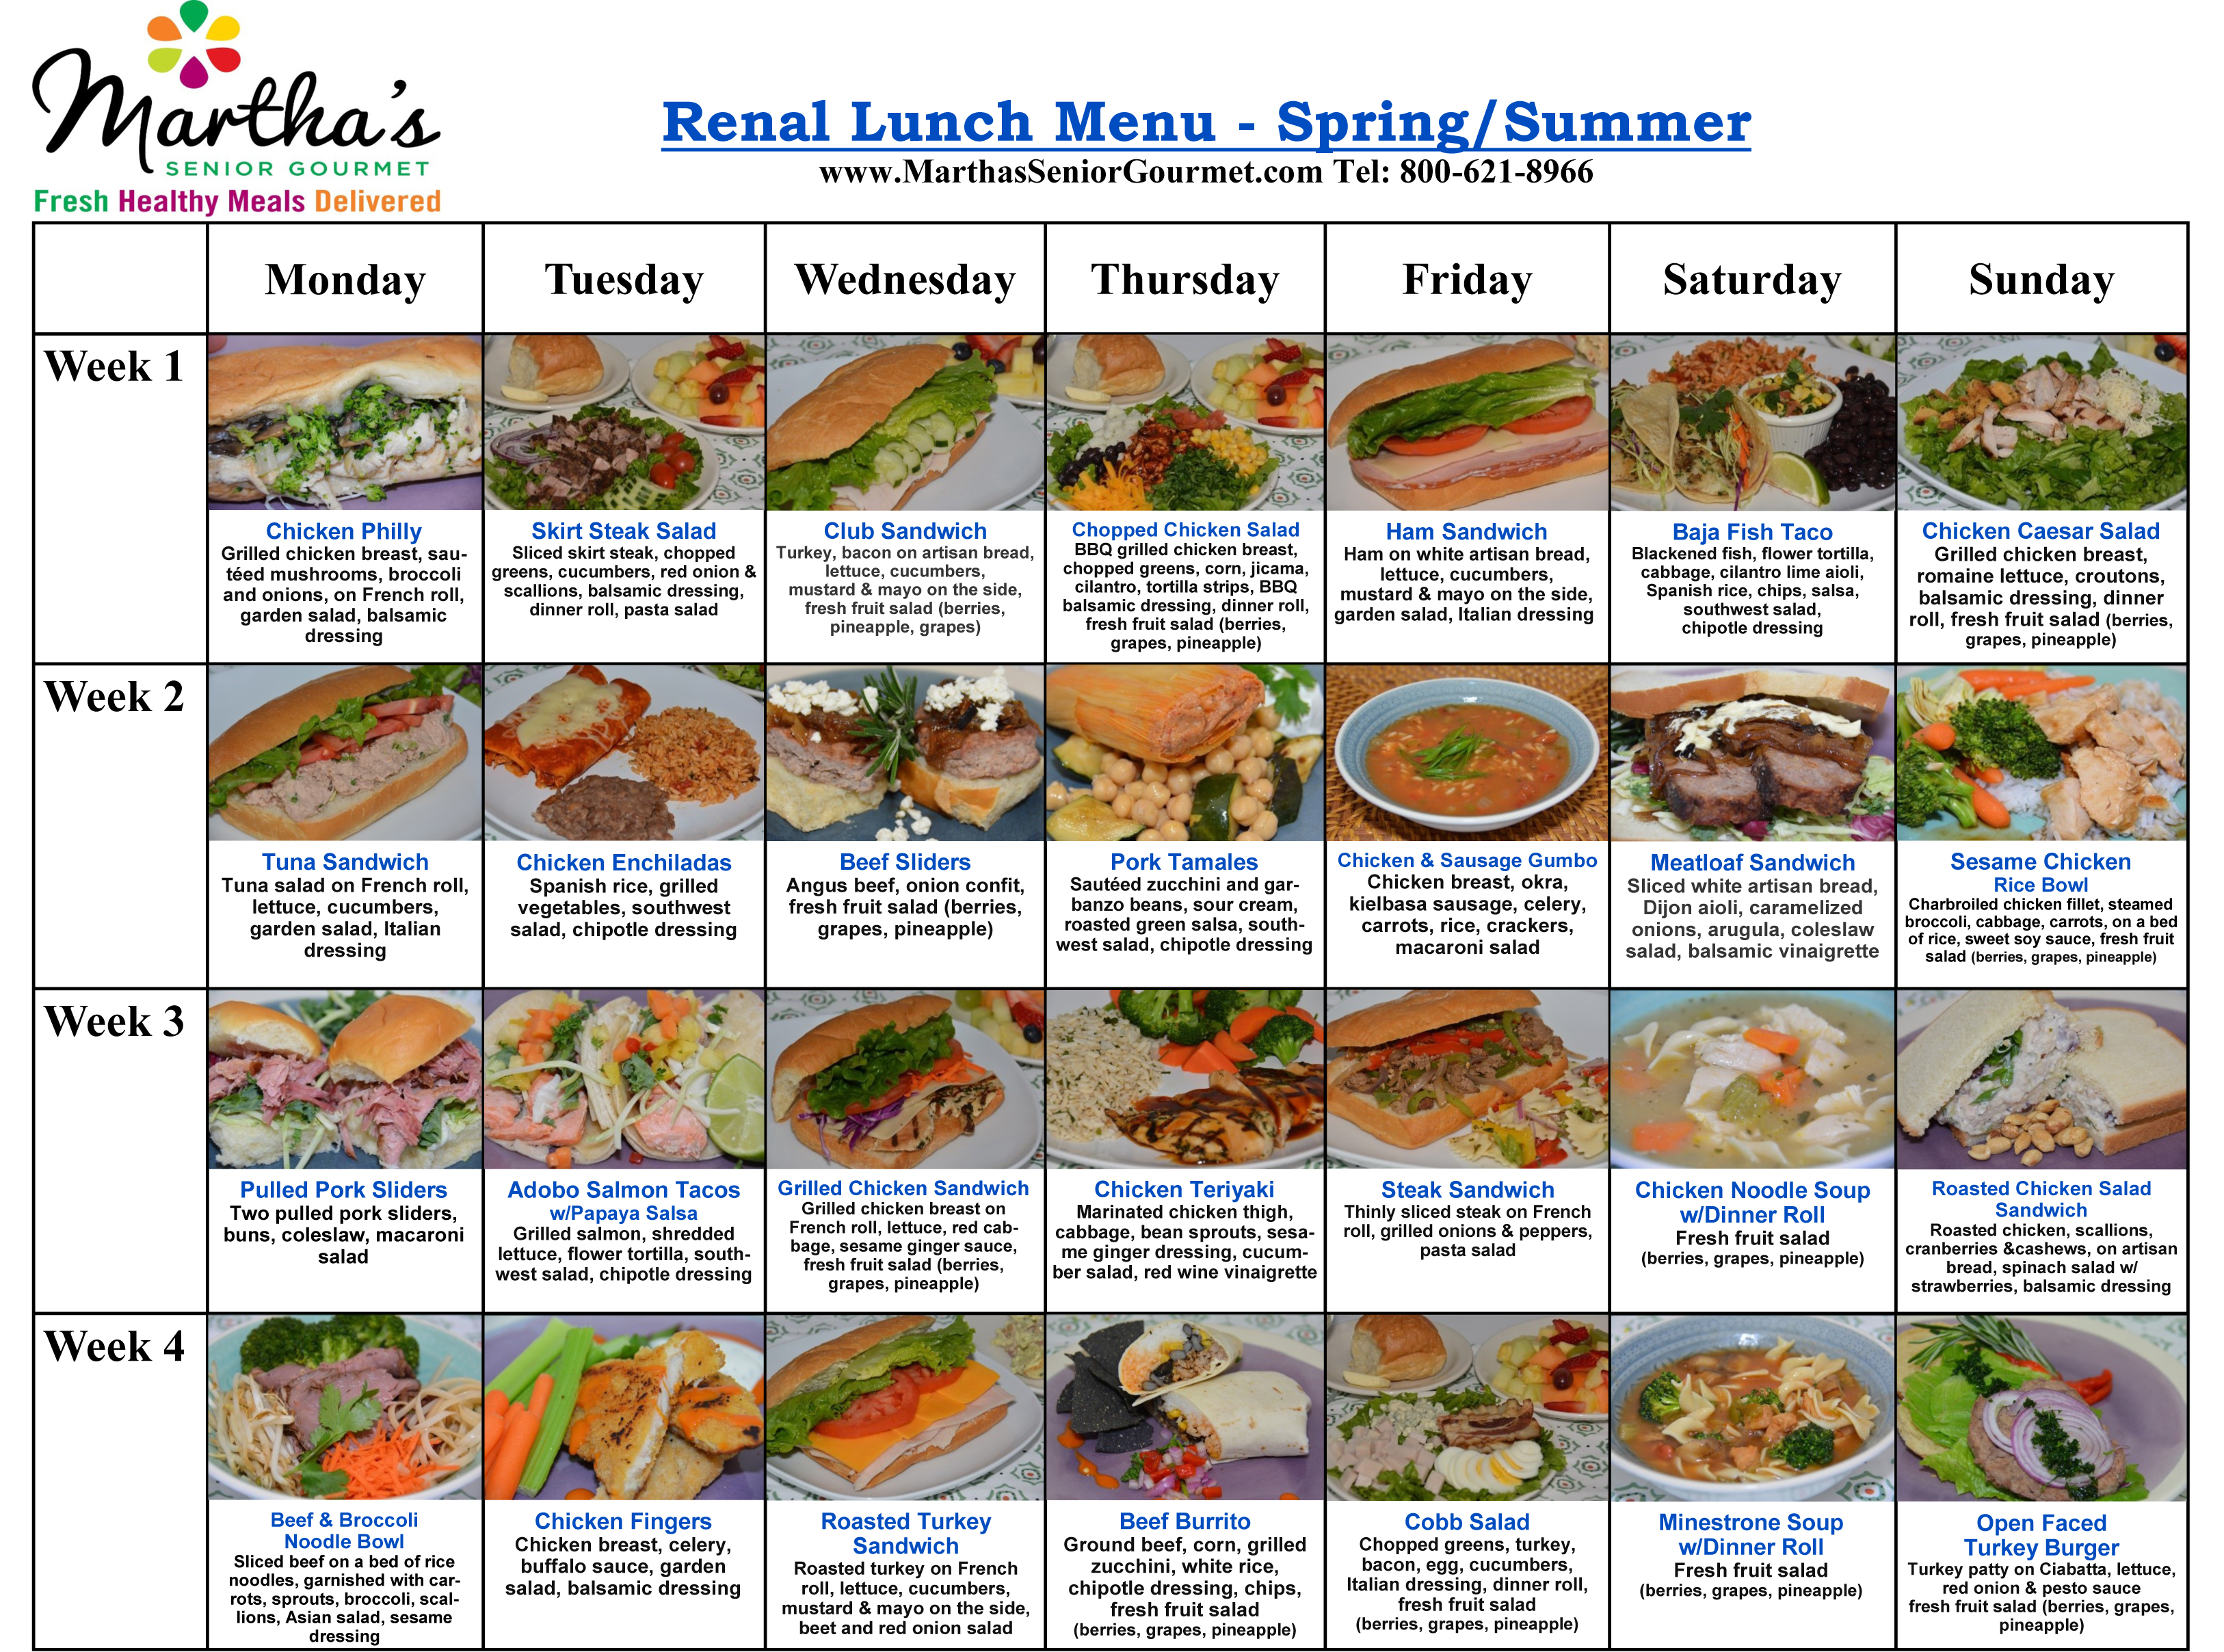 Martha's Renal Lunch Menu - Spring and Summer